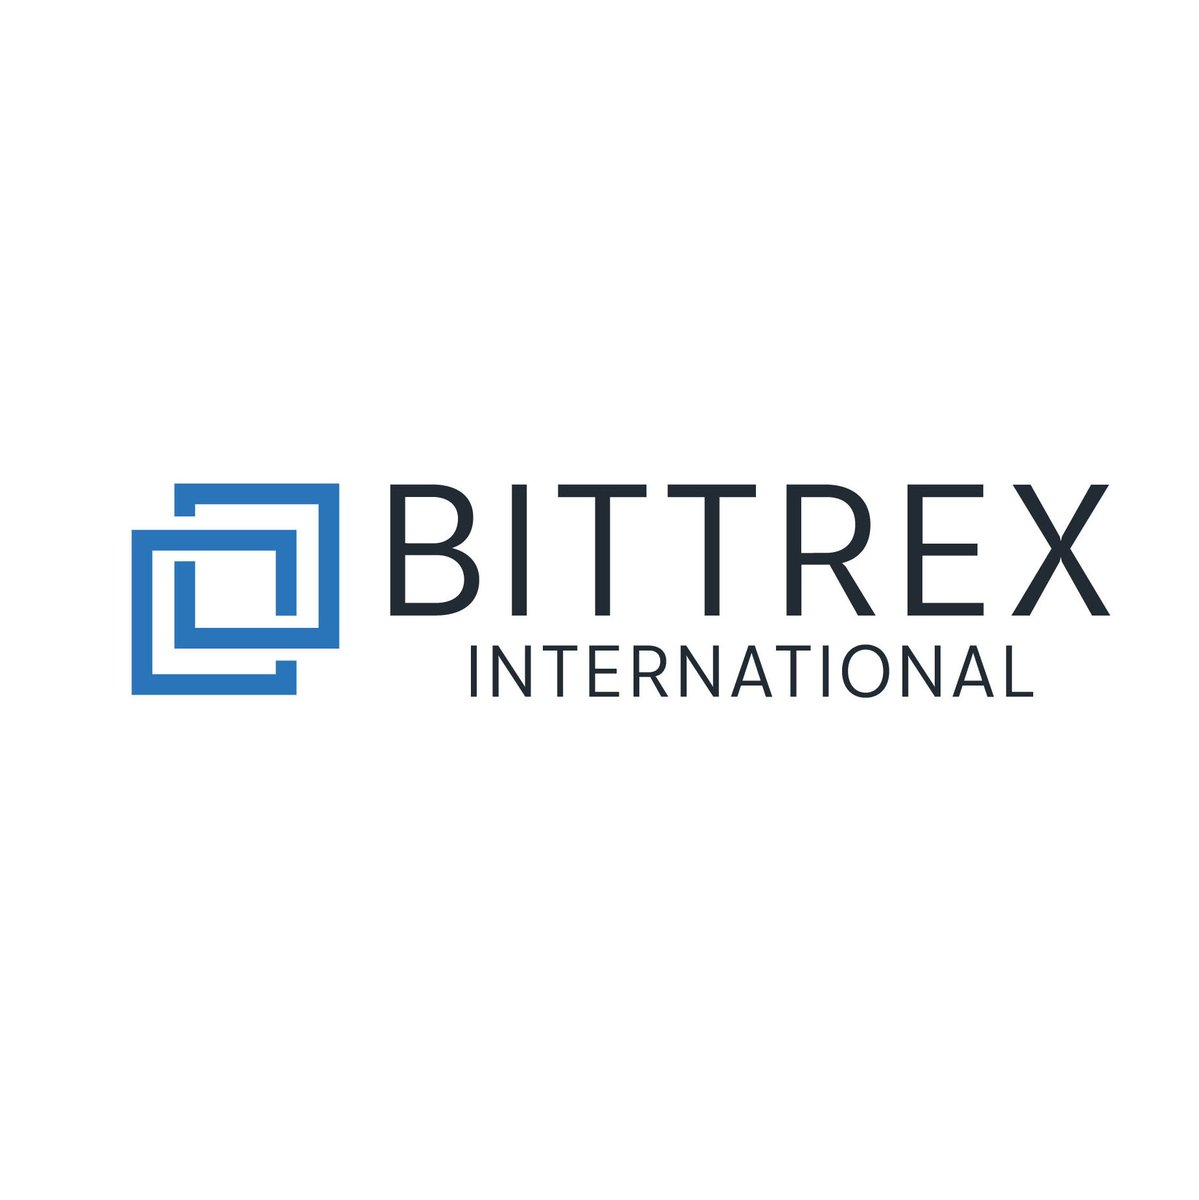 Bittrex International on Twitter: